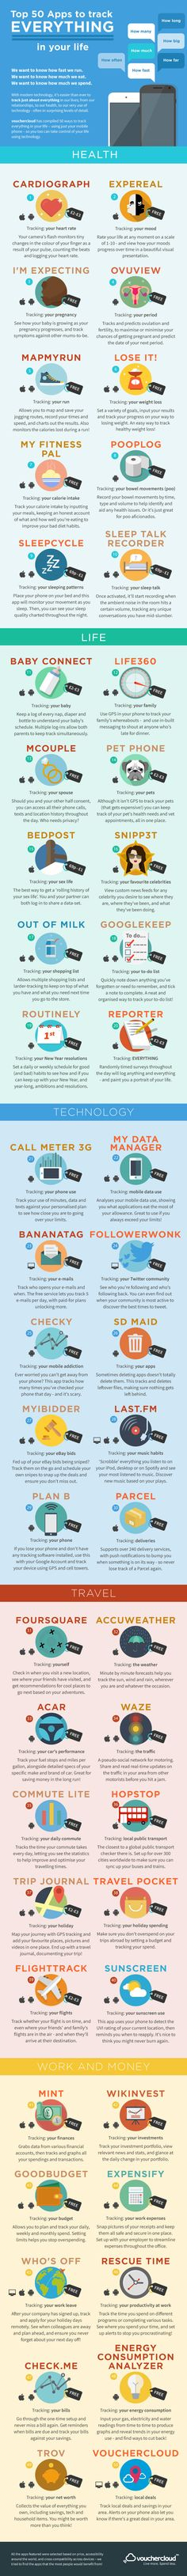 50 Mobile Apps to Track Everything in your life - #infographic